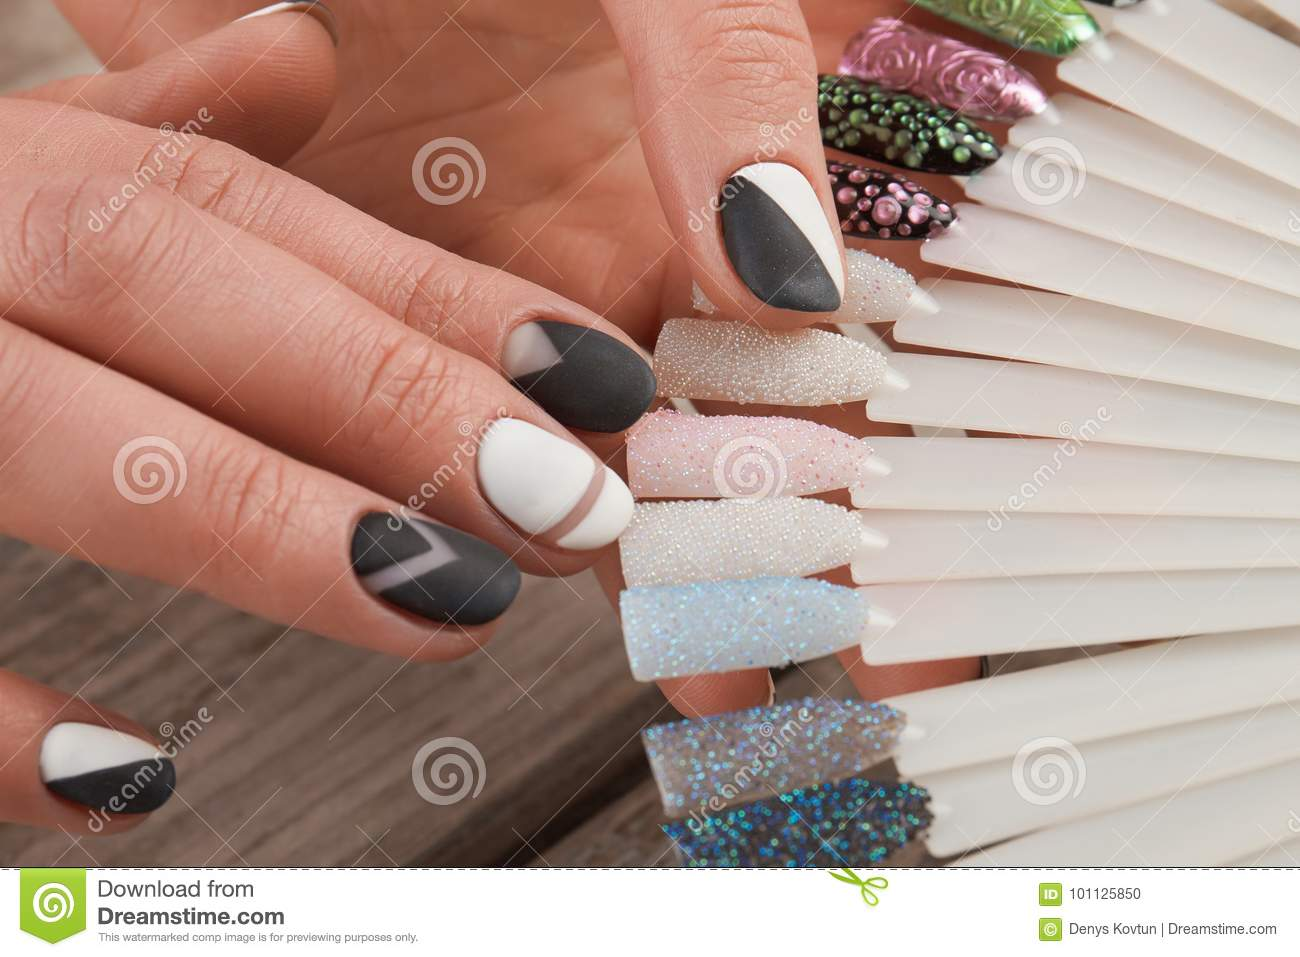 Fashion Nail Art Samples In Female Hands Stock Photo Image Of